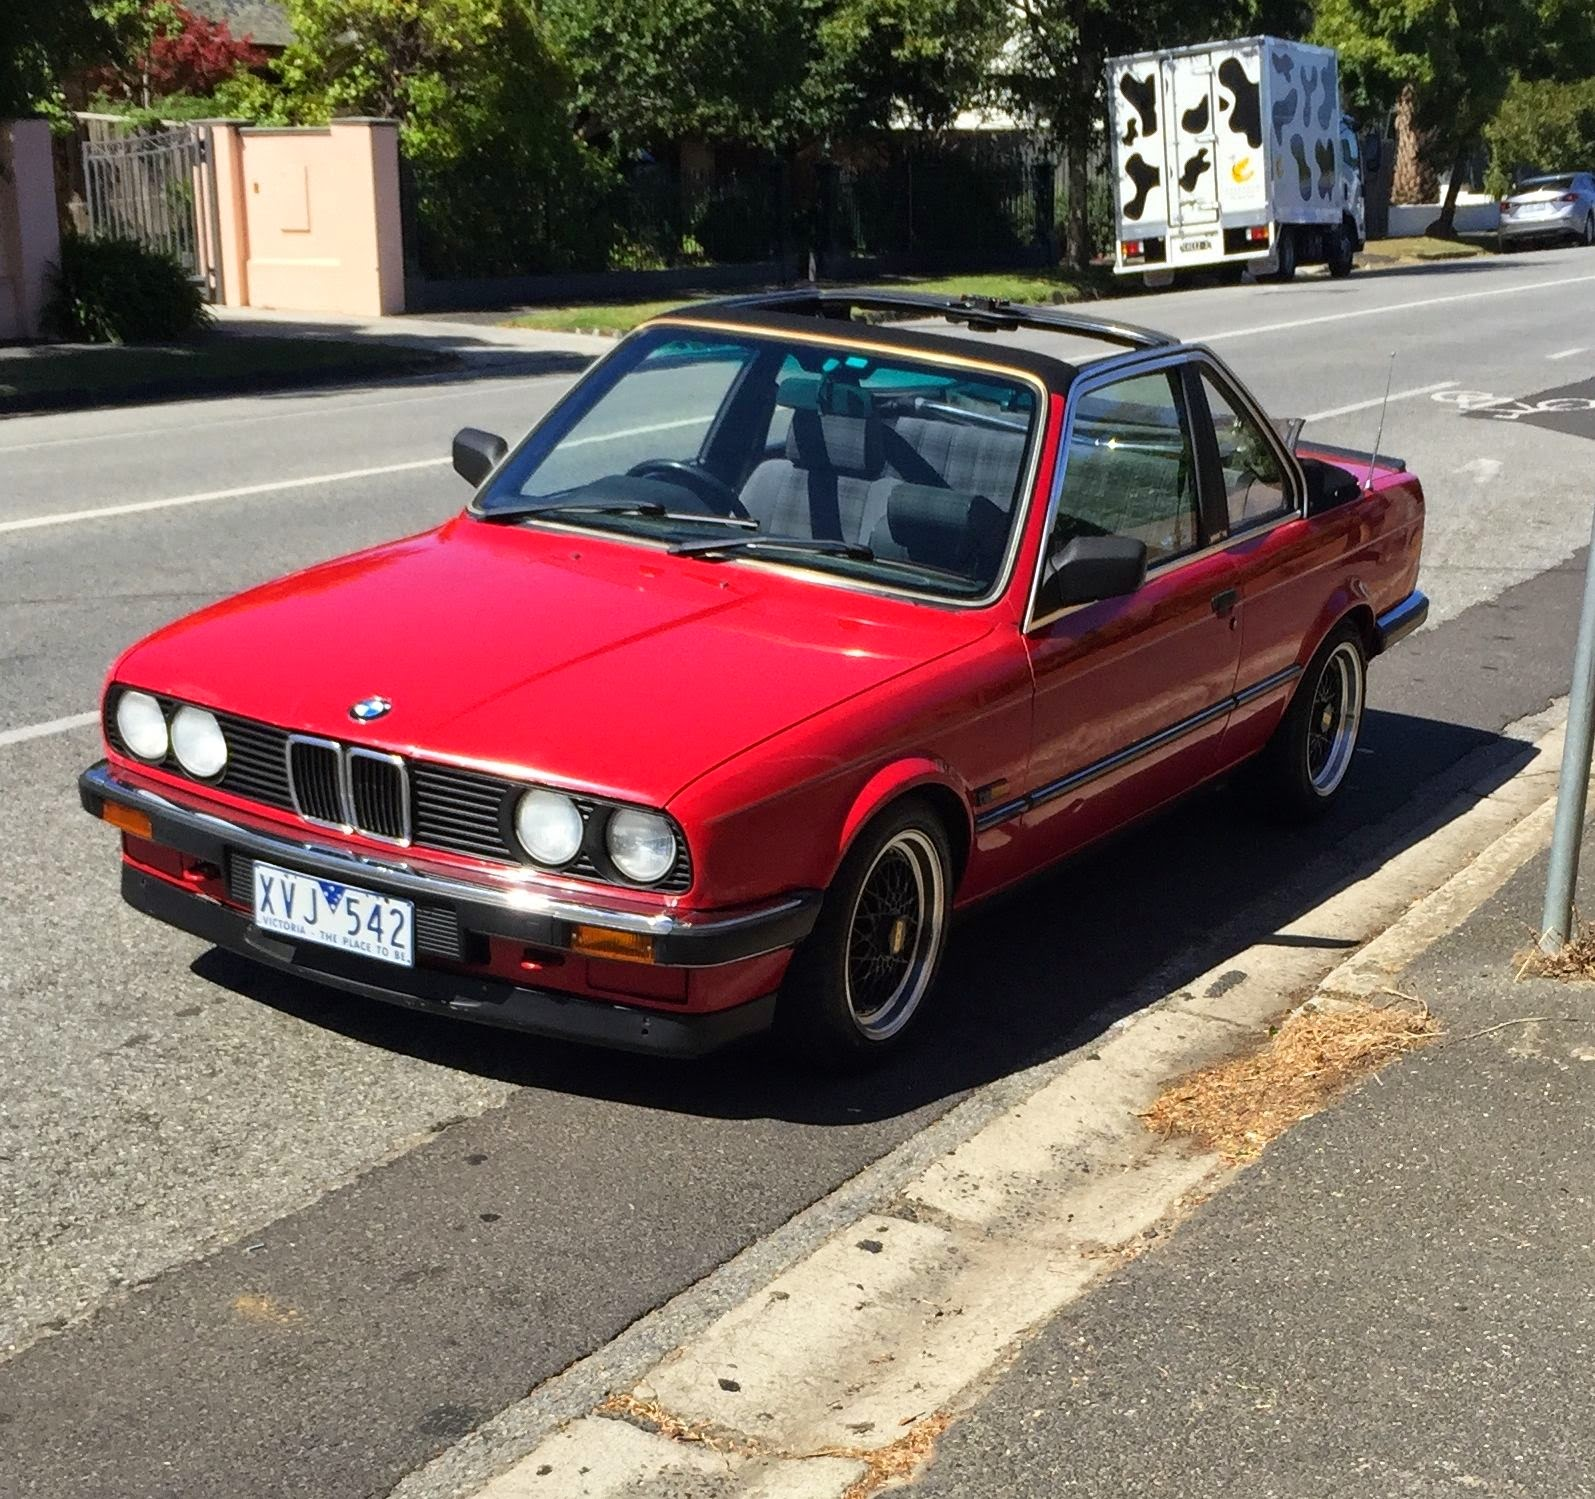 small resolution of baurspotting 1985 bmw e30 318i tc baur manual for sale in australia rh baurspotting blogspot com 1984 bmw 318i interior 1984 bmw 318i engine diagram